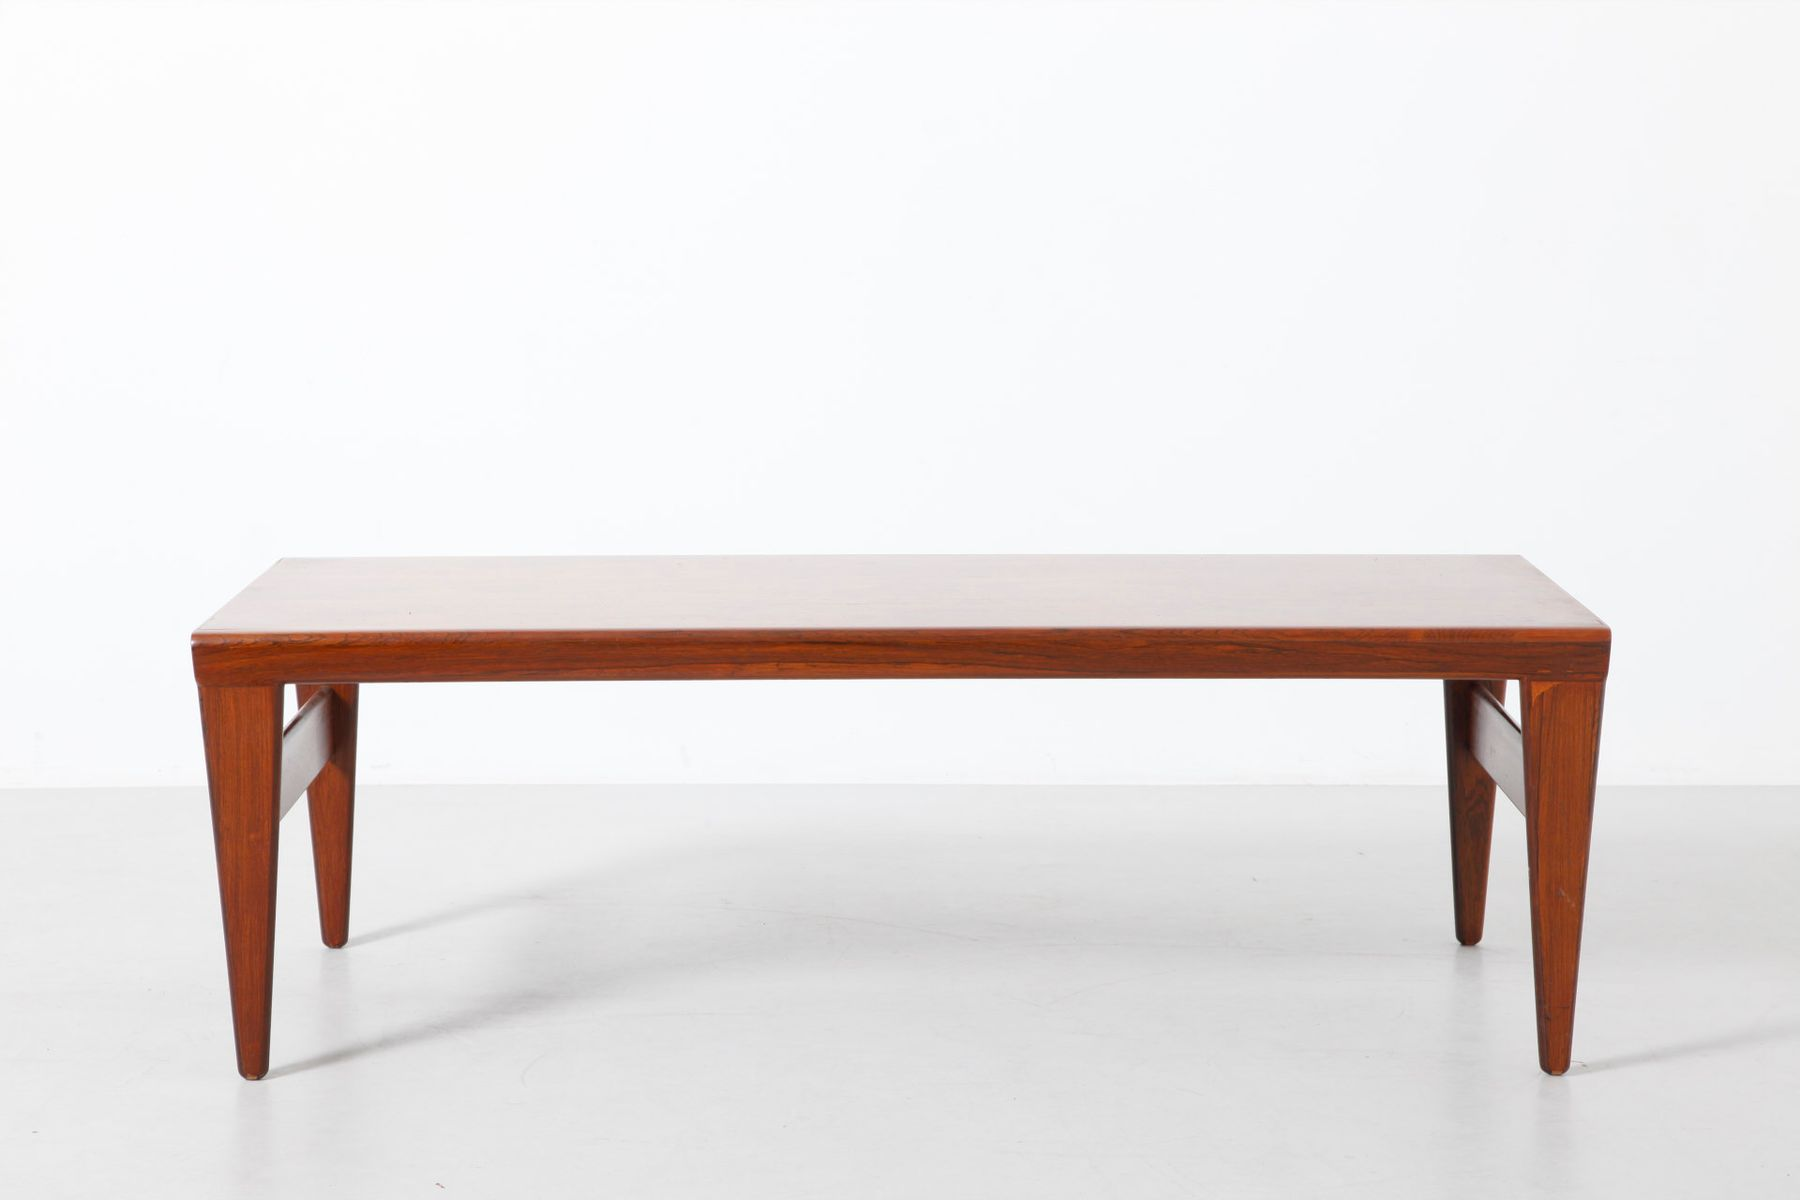 Low Rosewood Coffee Table With Pull Out Trays For Sale At Pamono